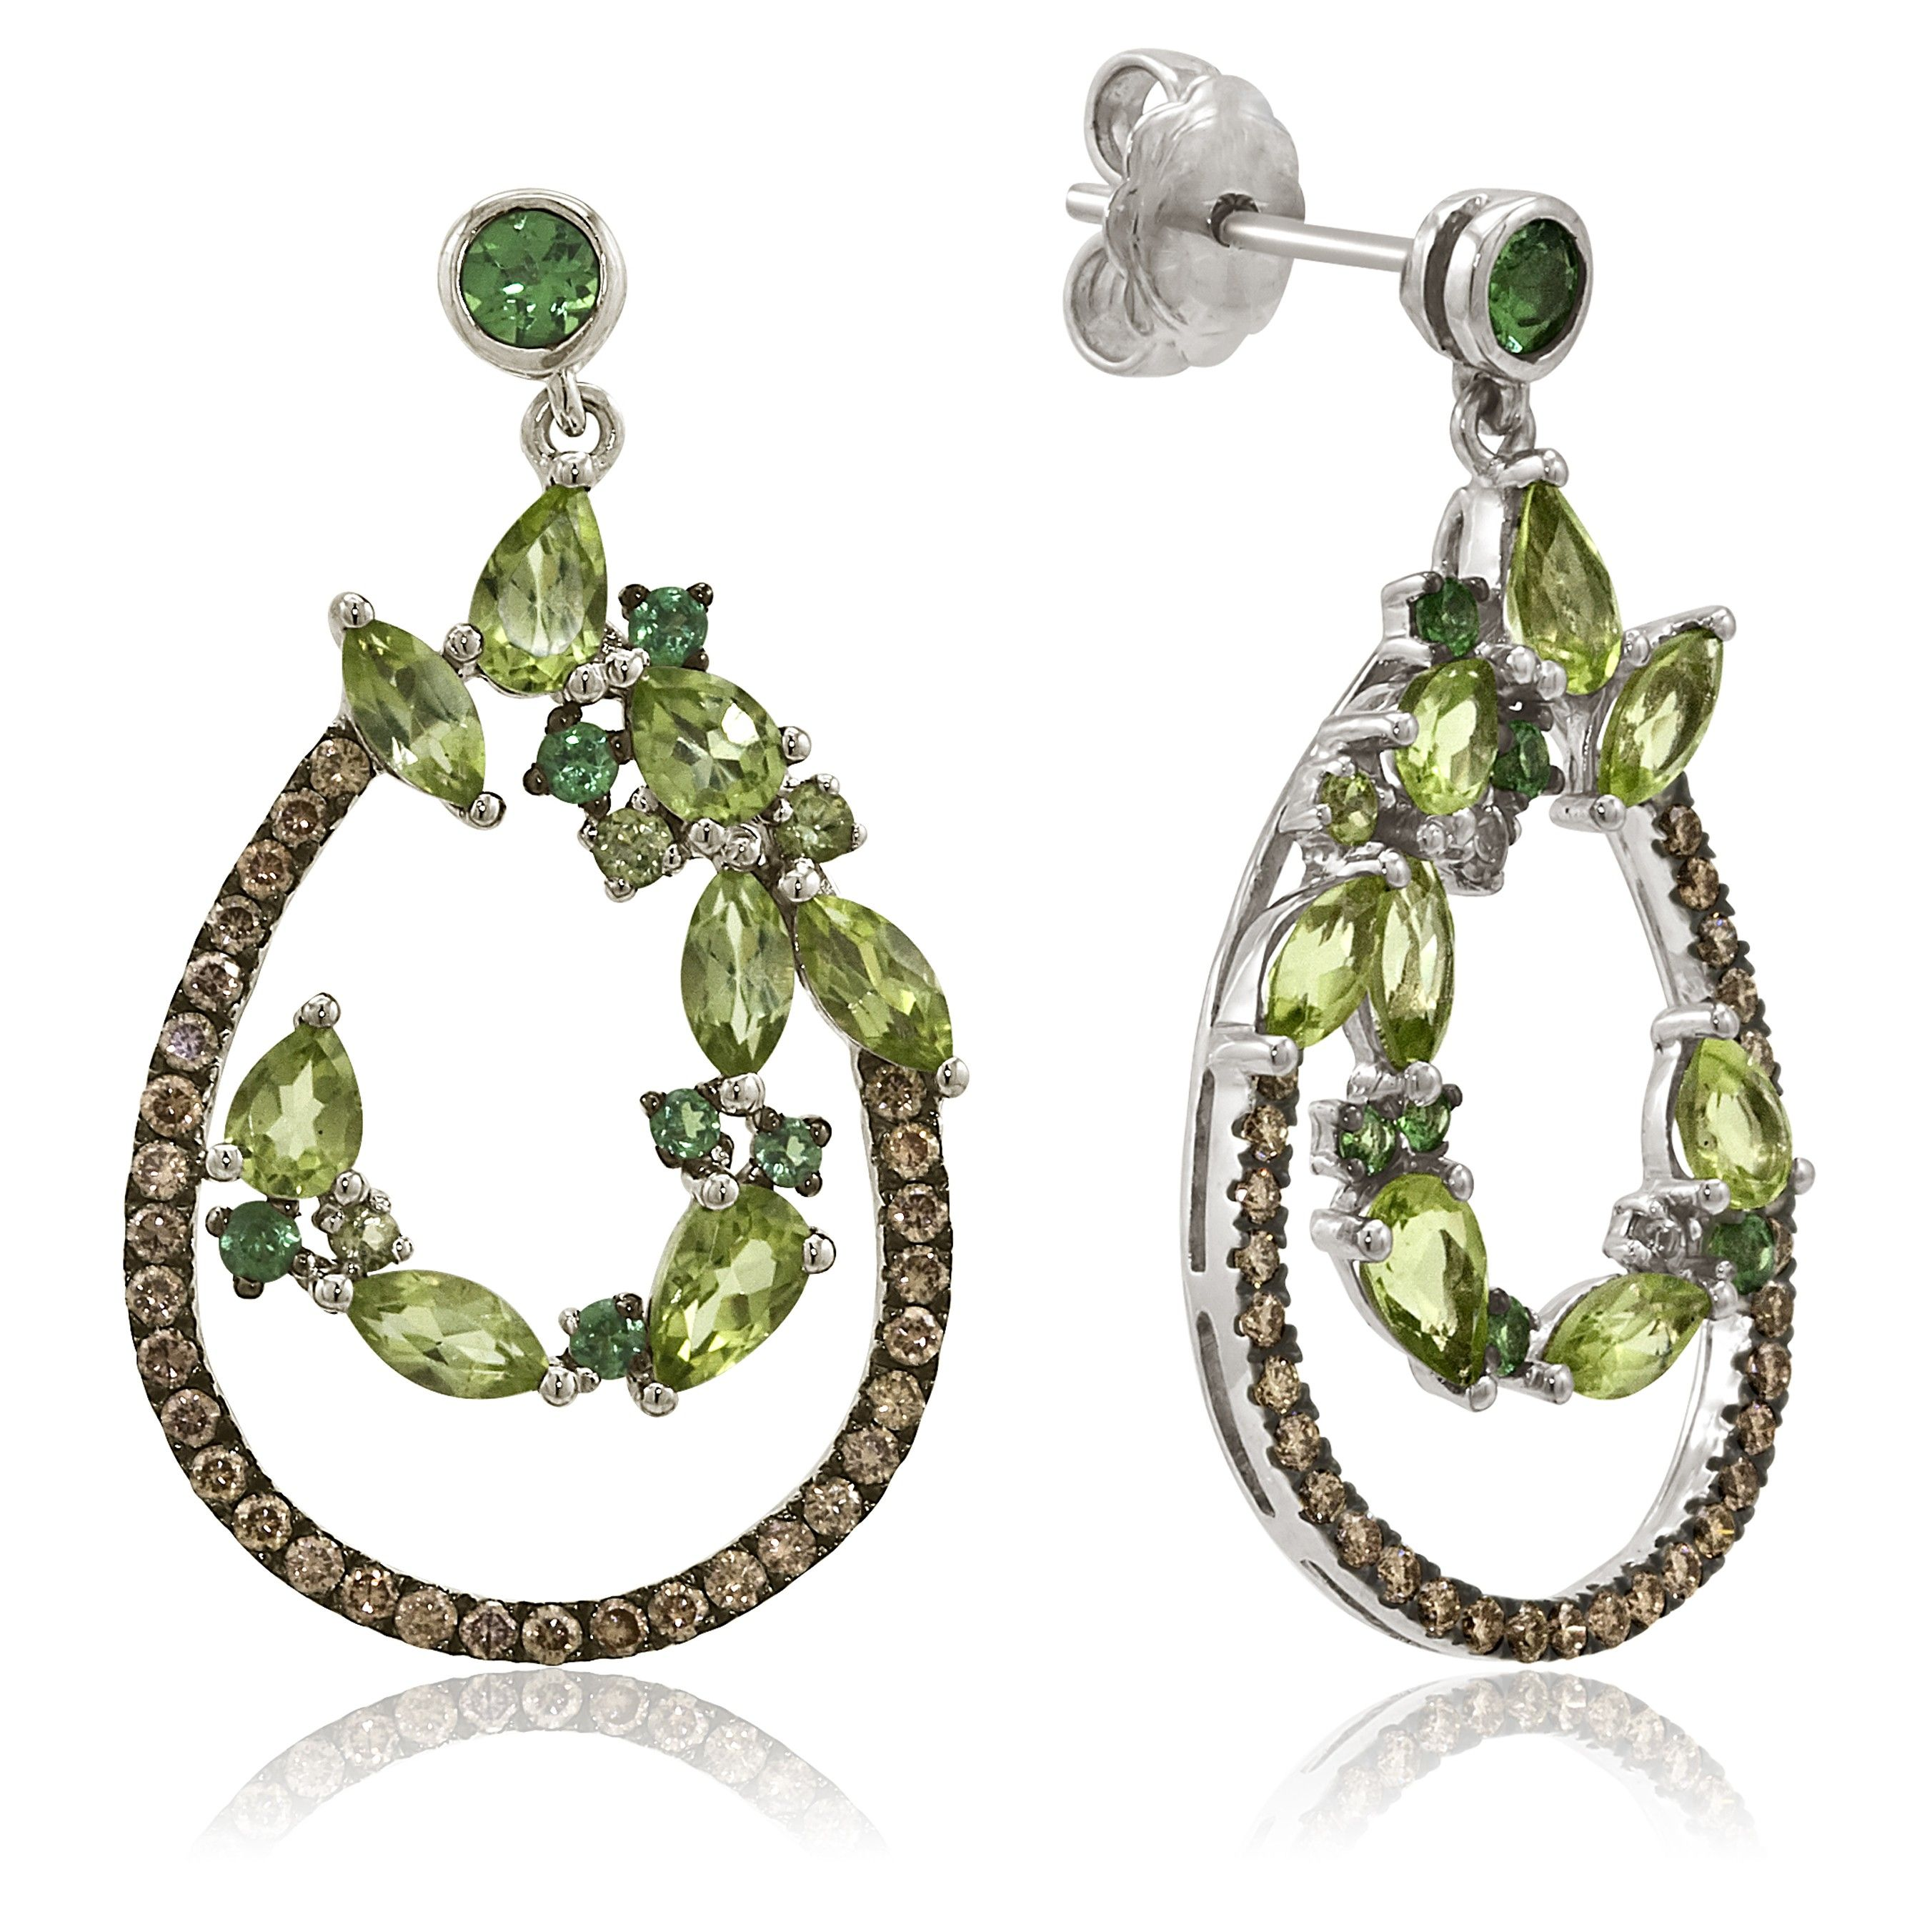 Le Vian 14K White Gold, Green Apple Peridot & Tsavorite Gemstone Dangle Earrings